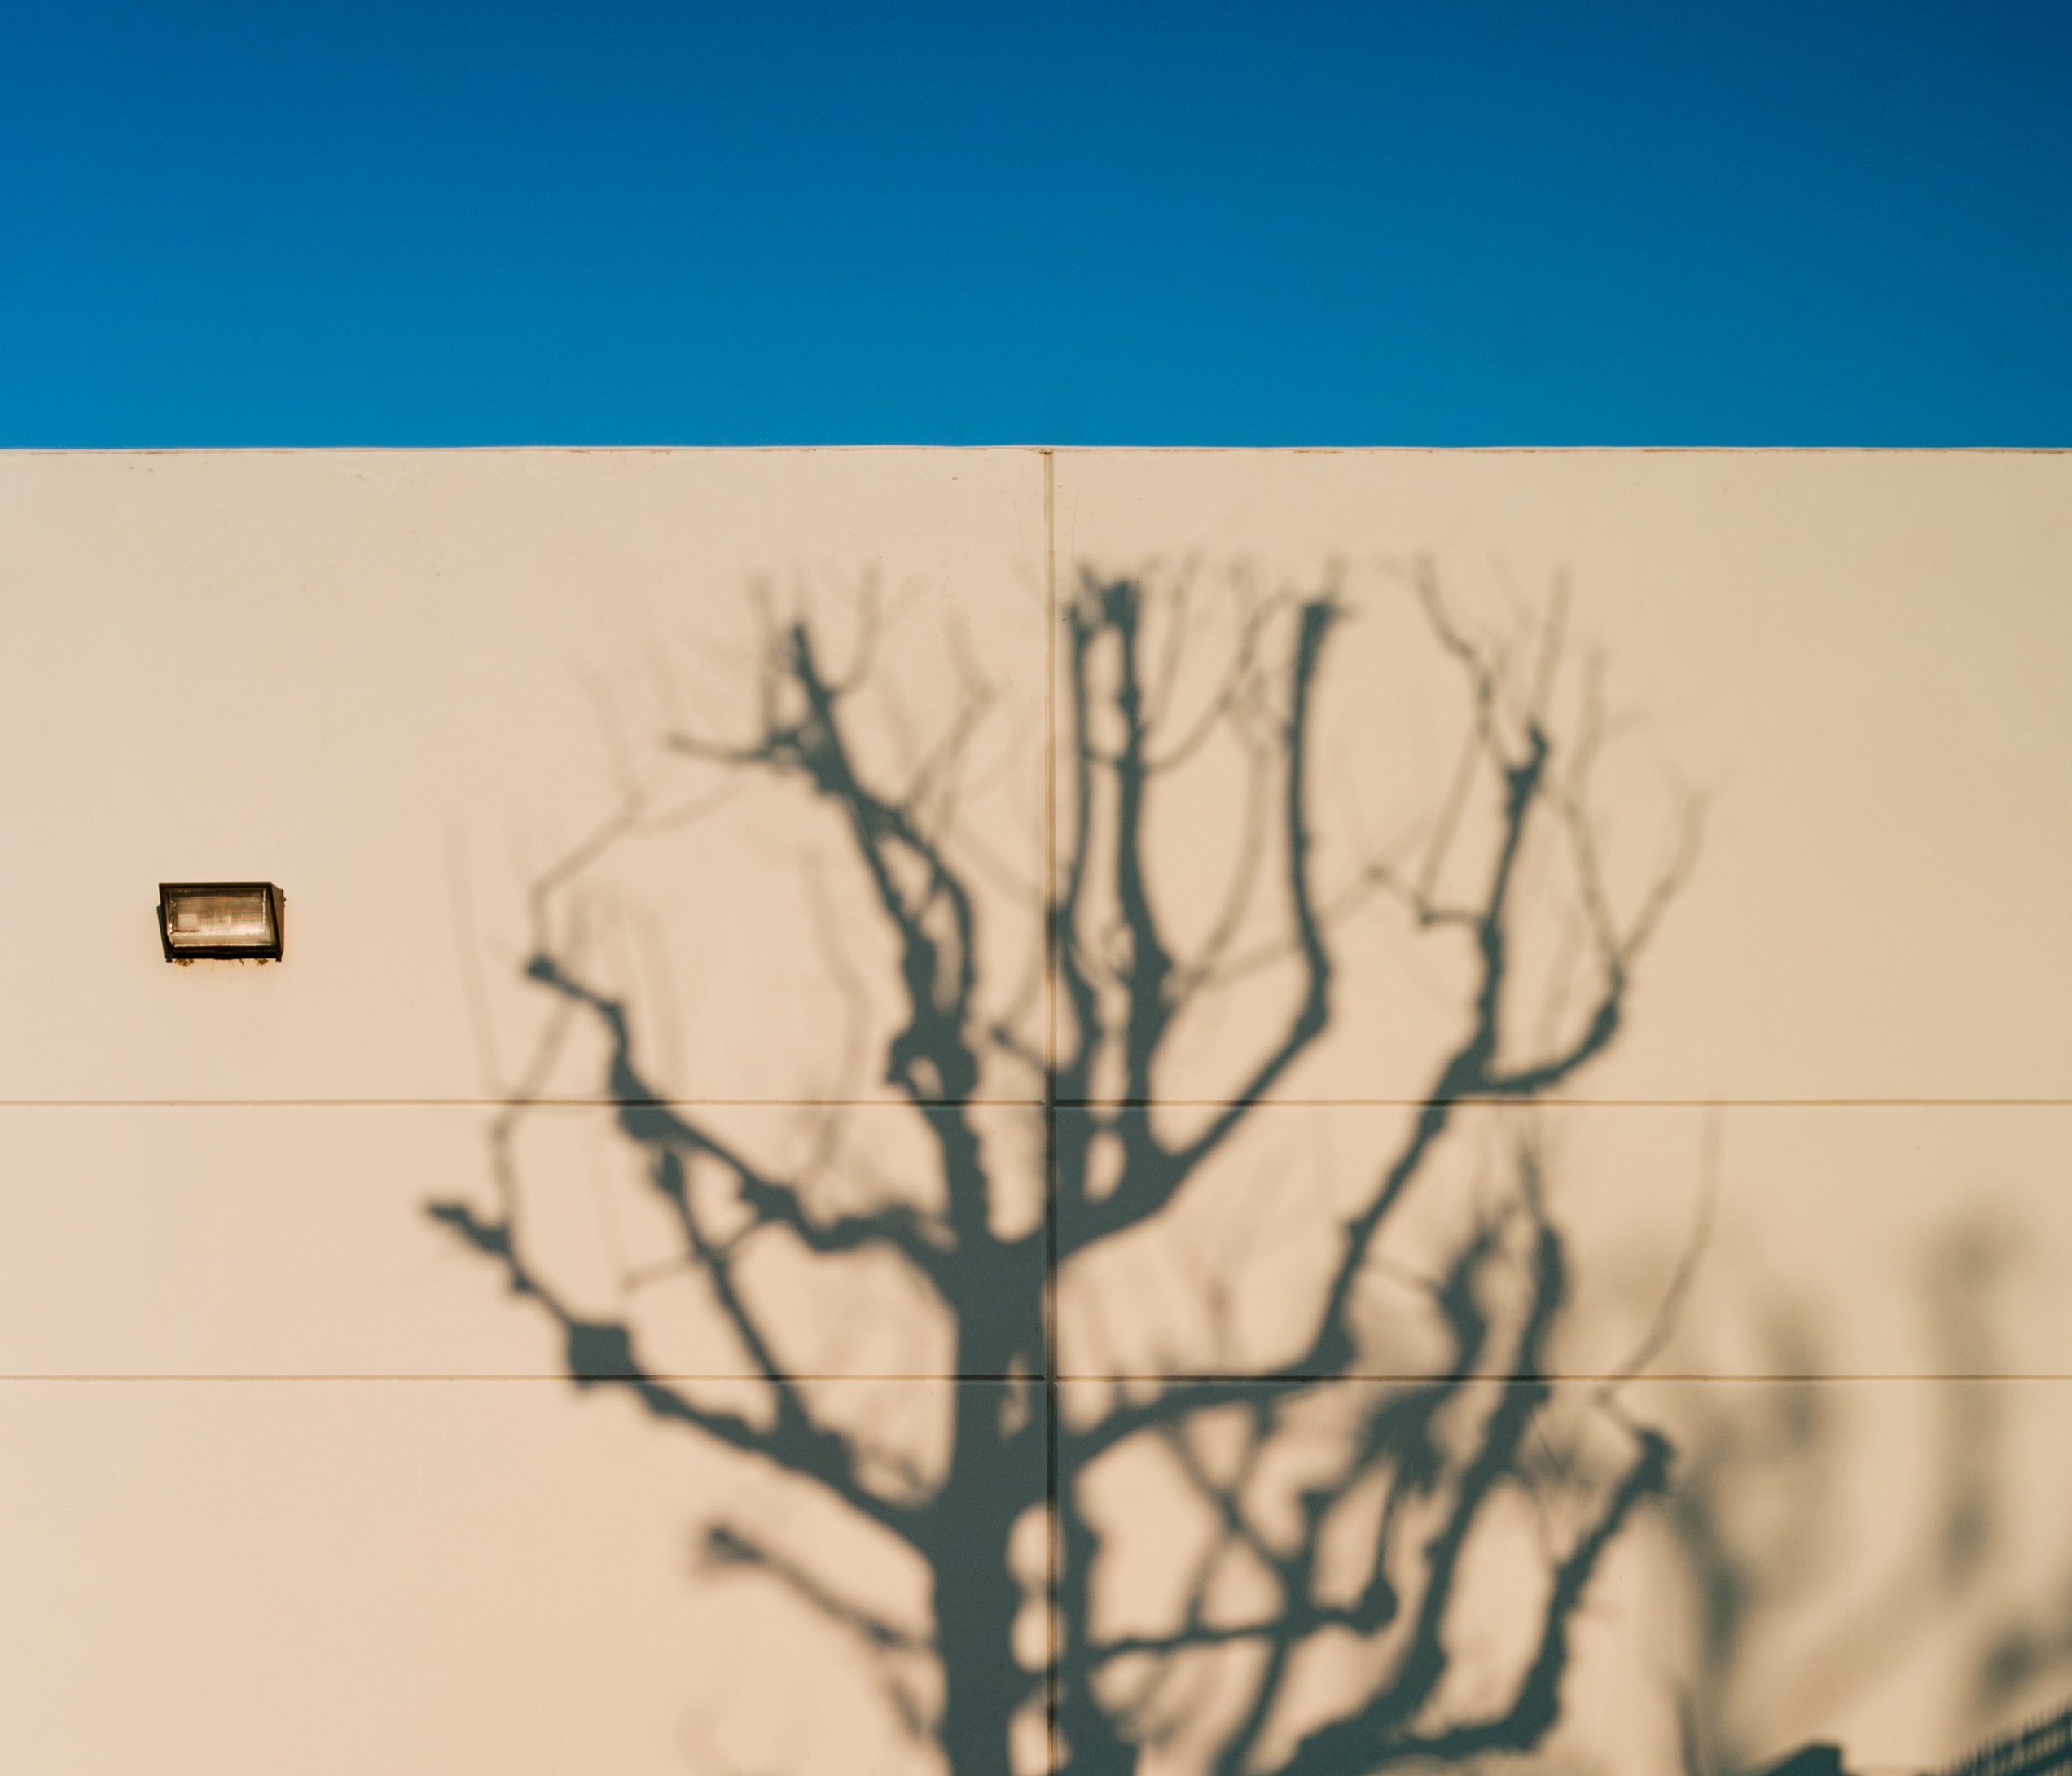 silhouette of leafless tree on beige building